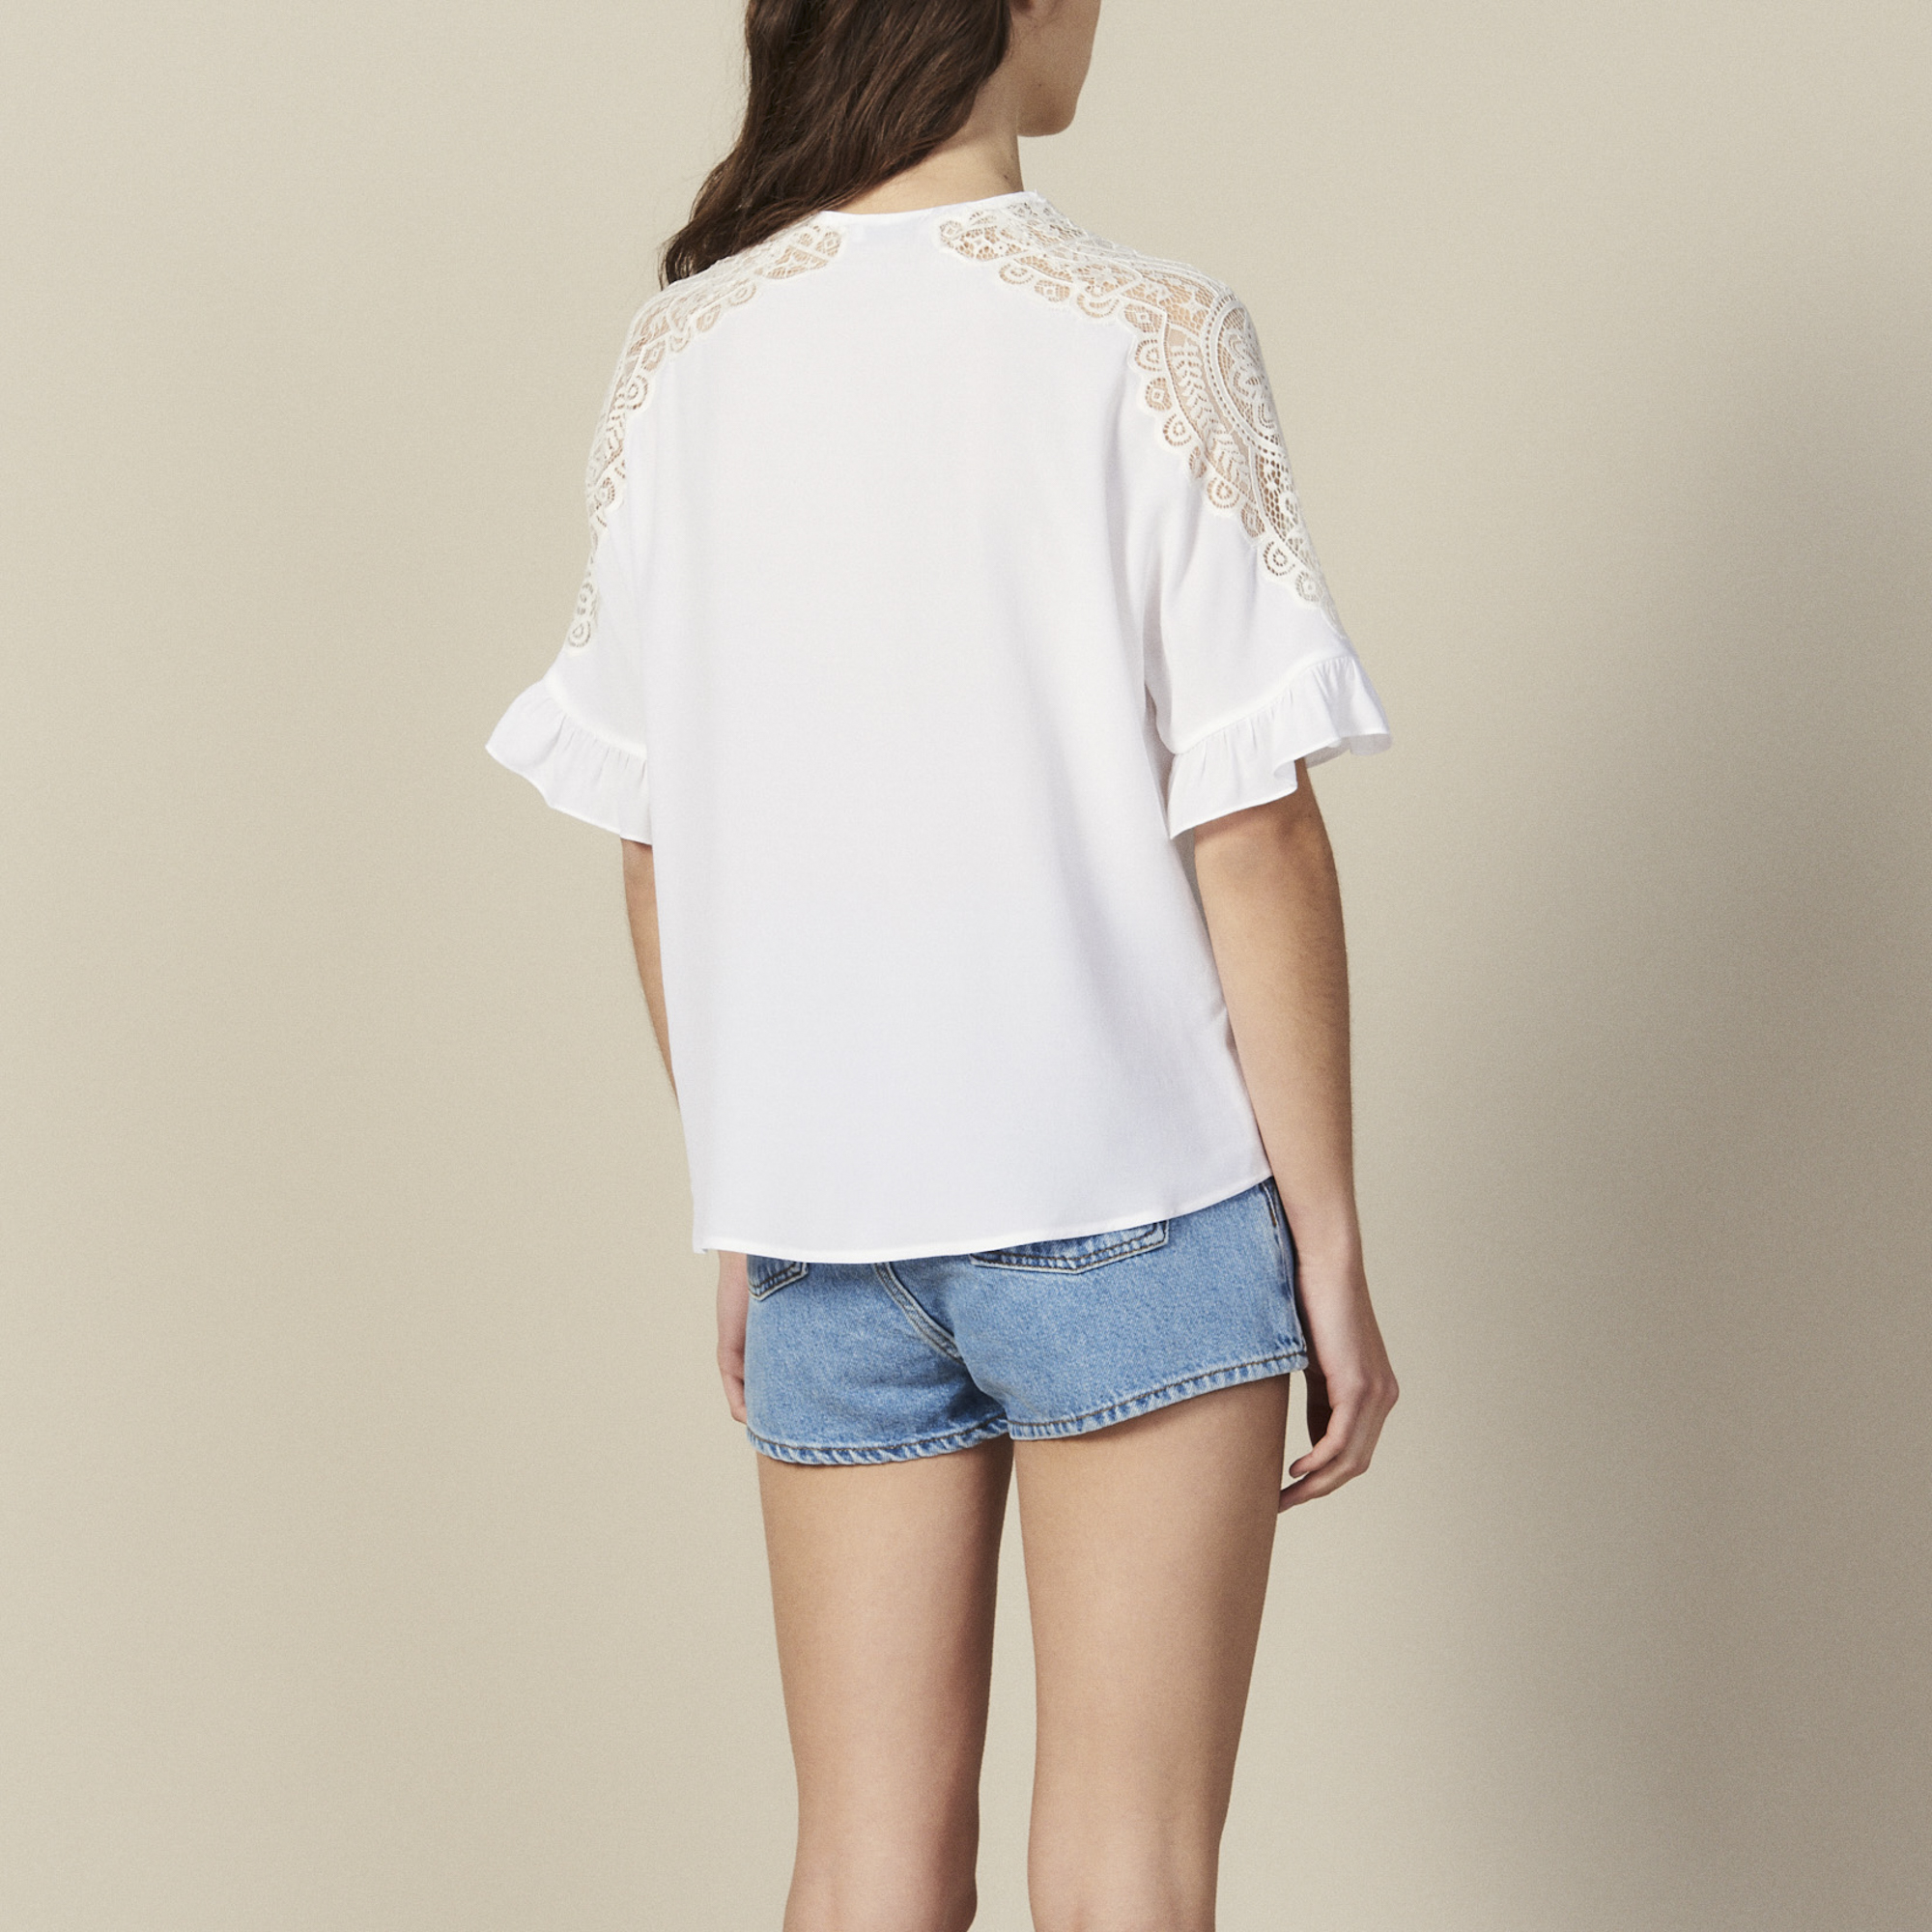 c2a437e2382 ... Top With Lace Insert : Tops & Shirts color white ...